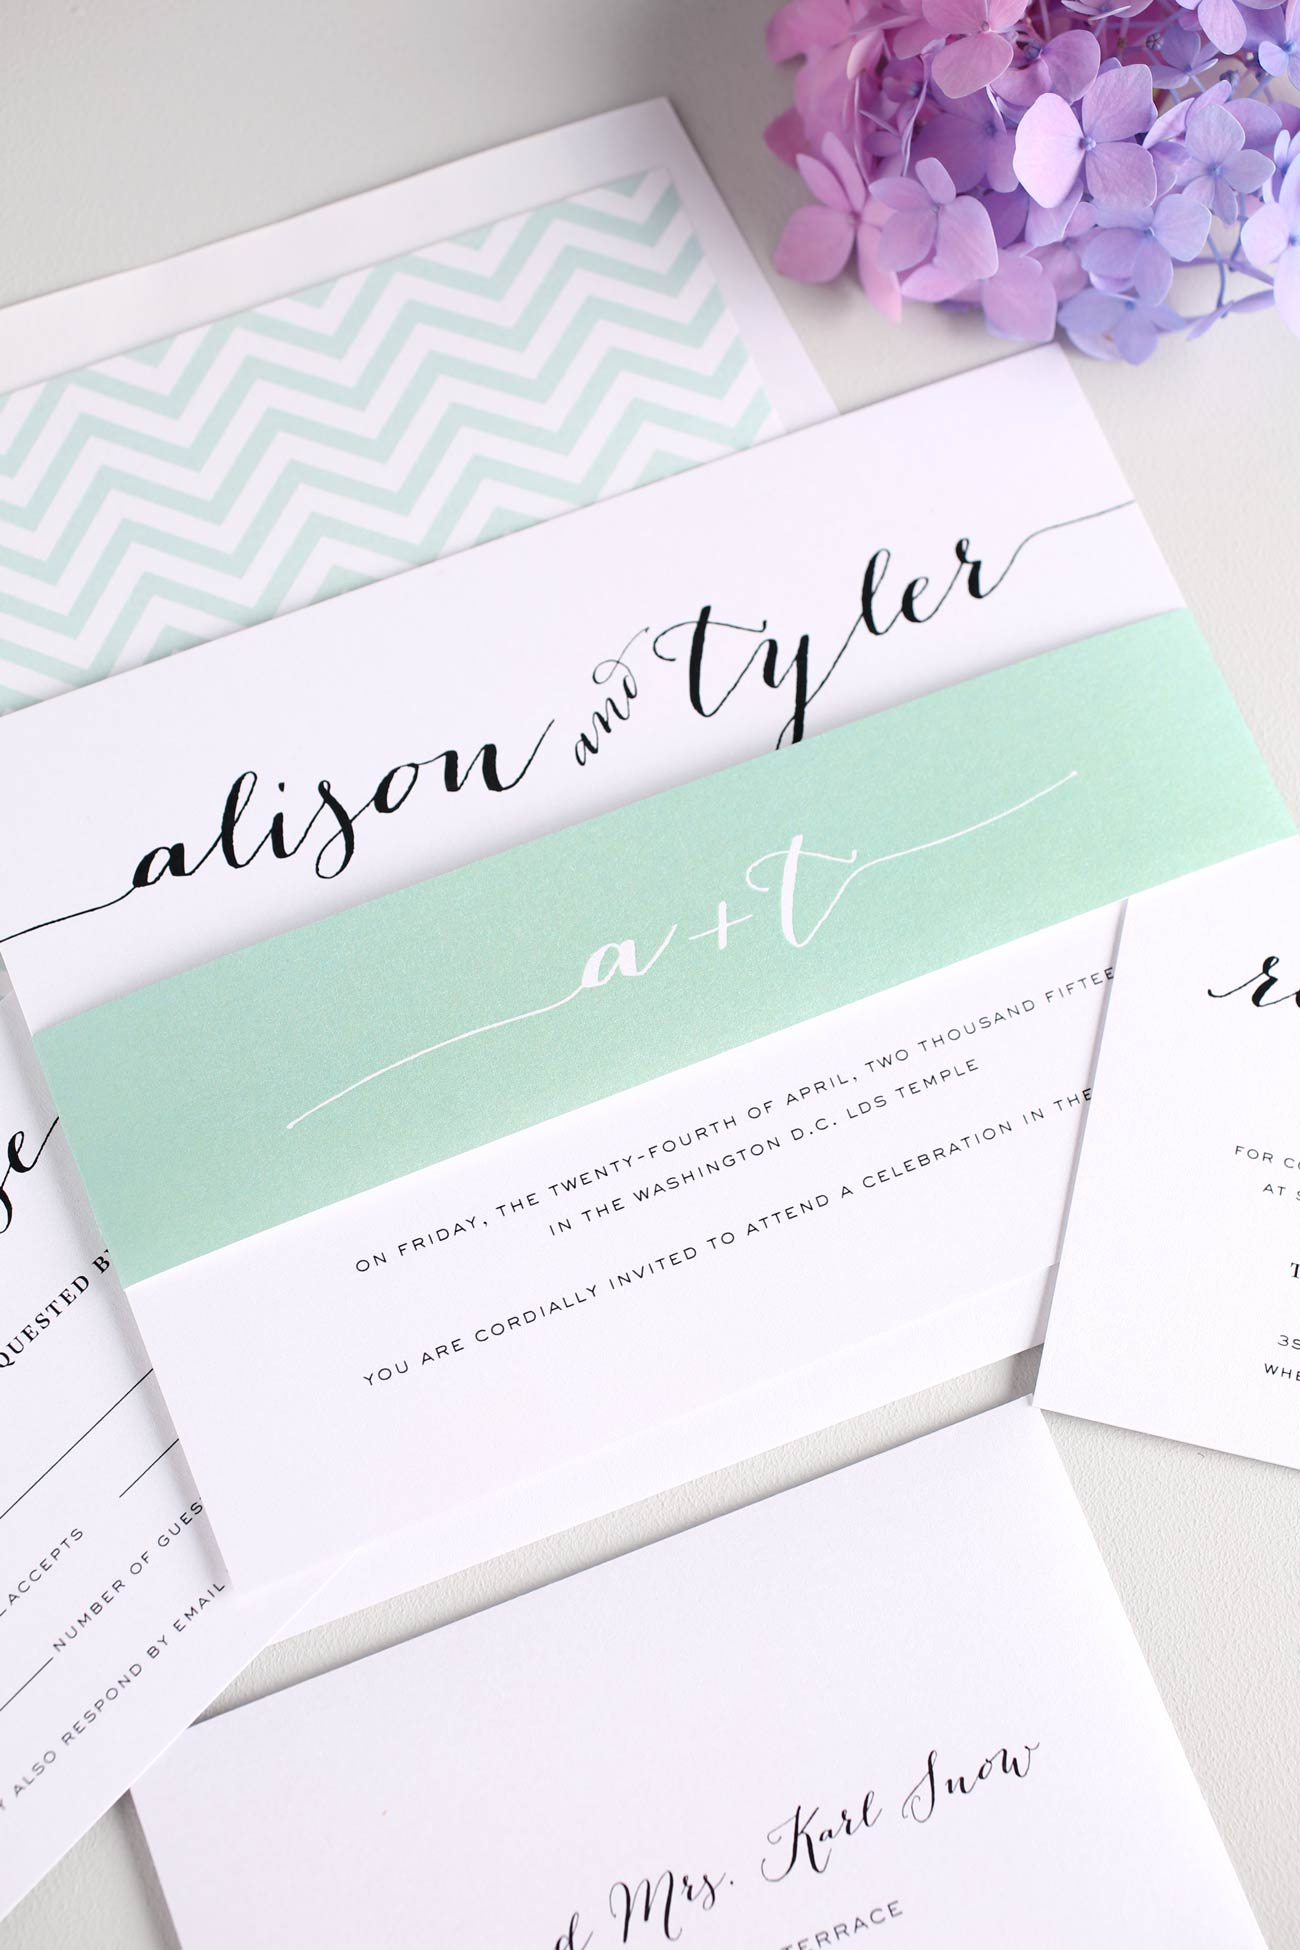 Jade wedding invitations with chevron accents and pretty script